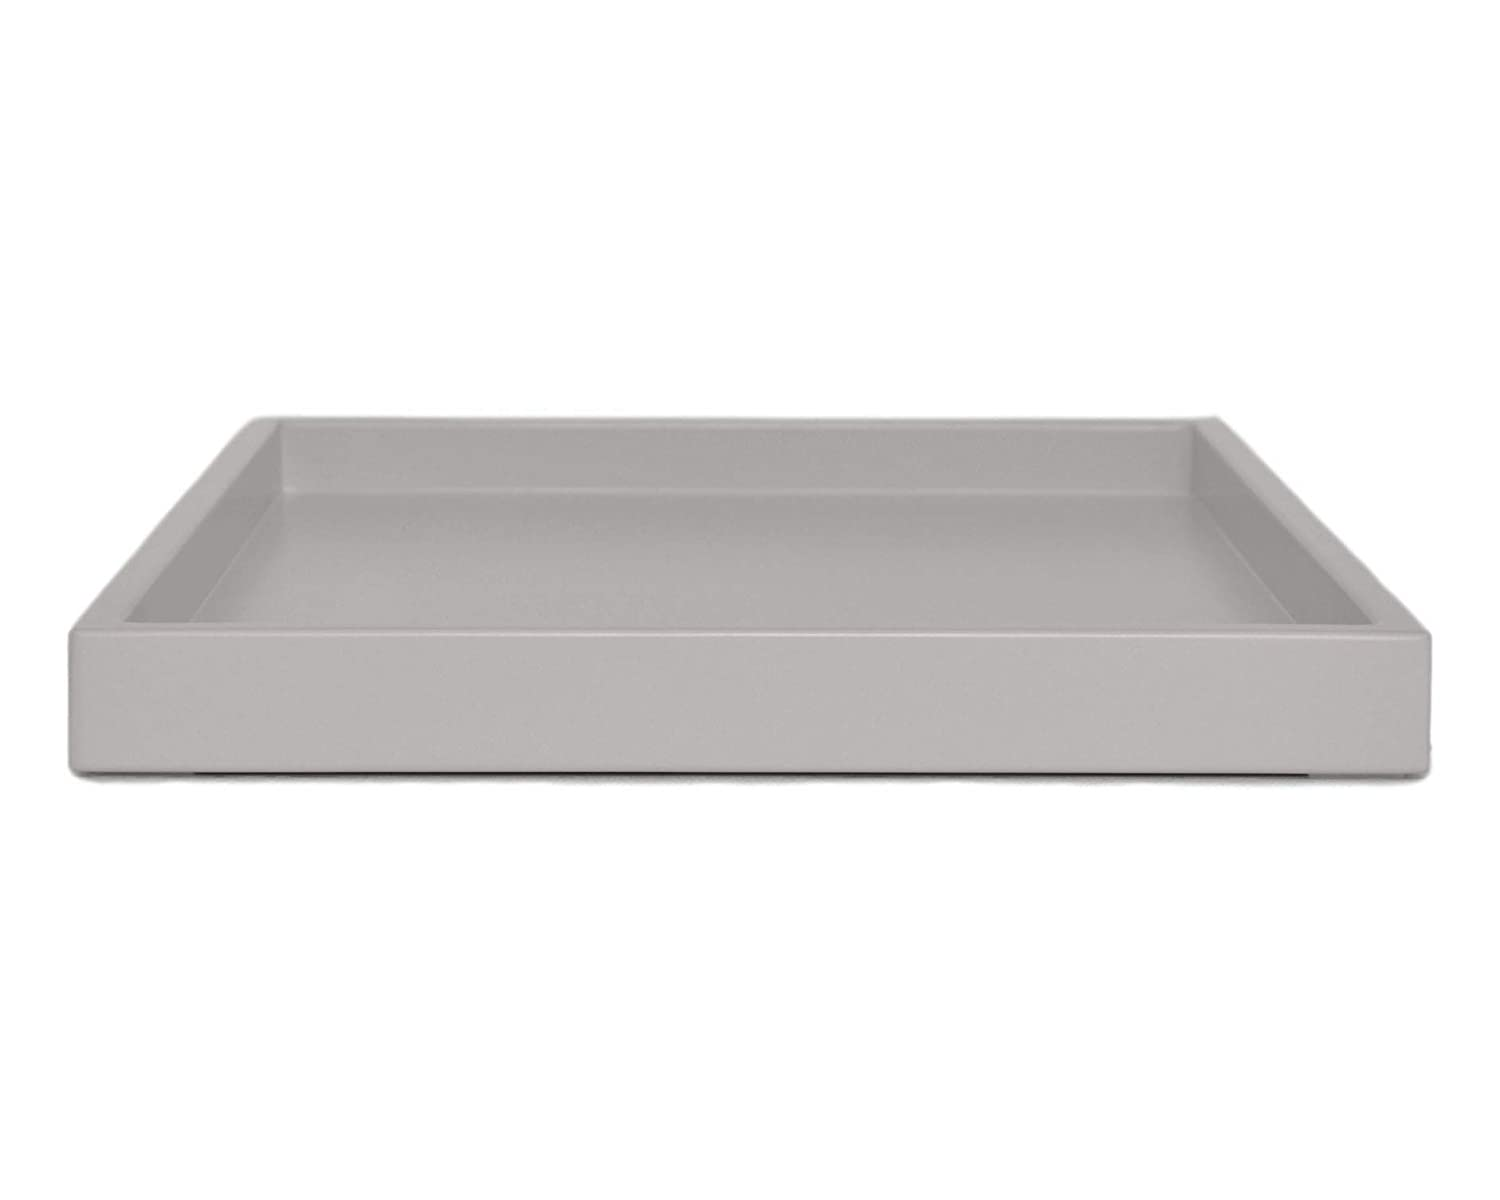 - Amazon.com: Gray Coffee Table Ottoman Serving Tray Without Handles